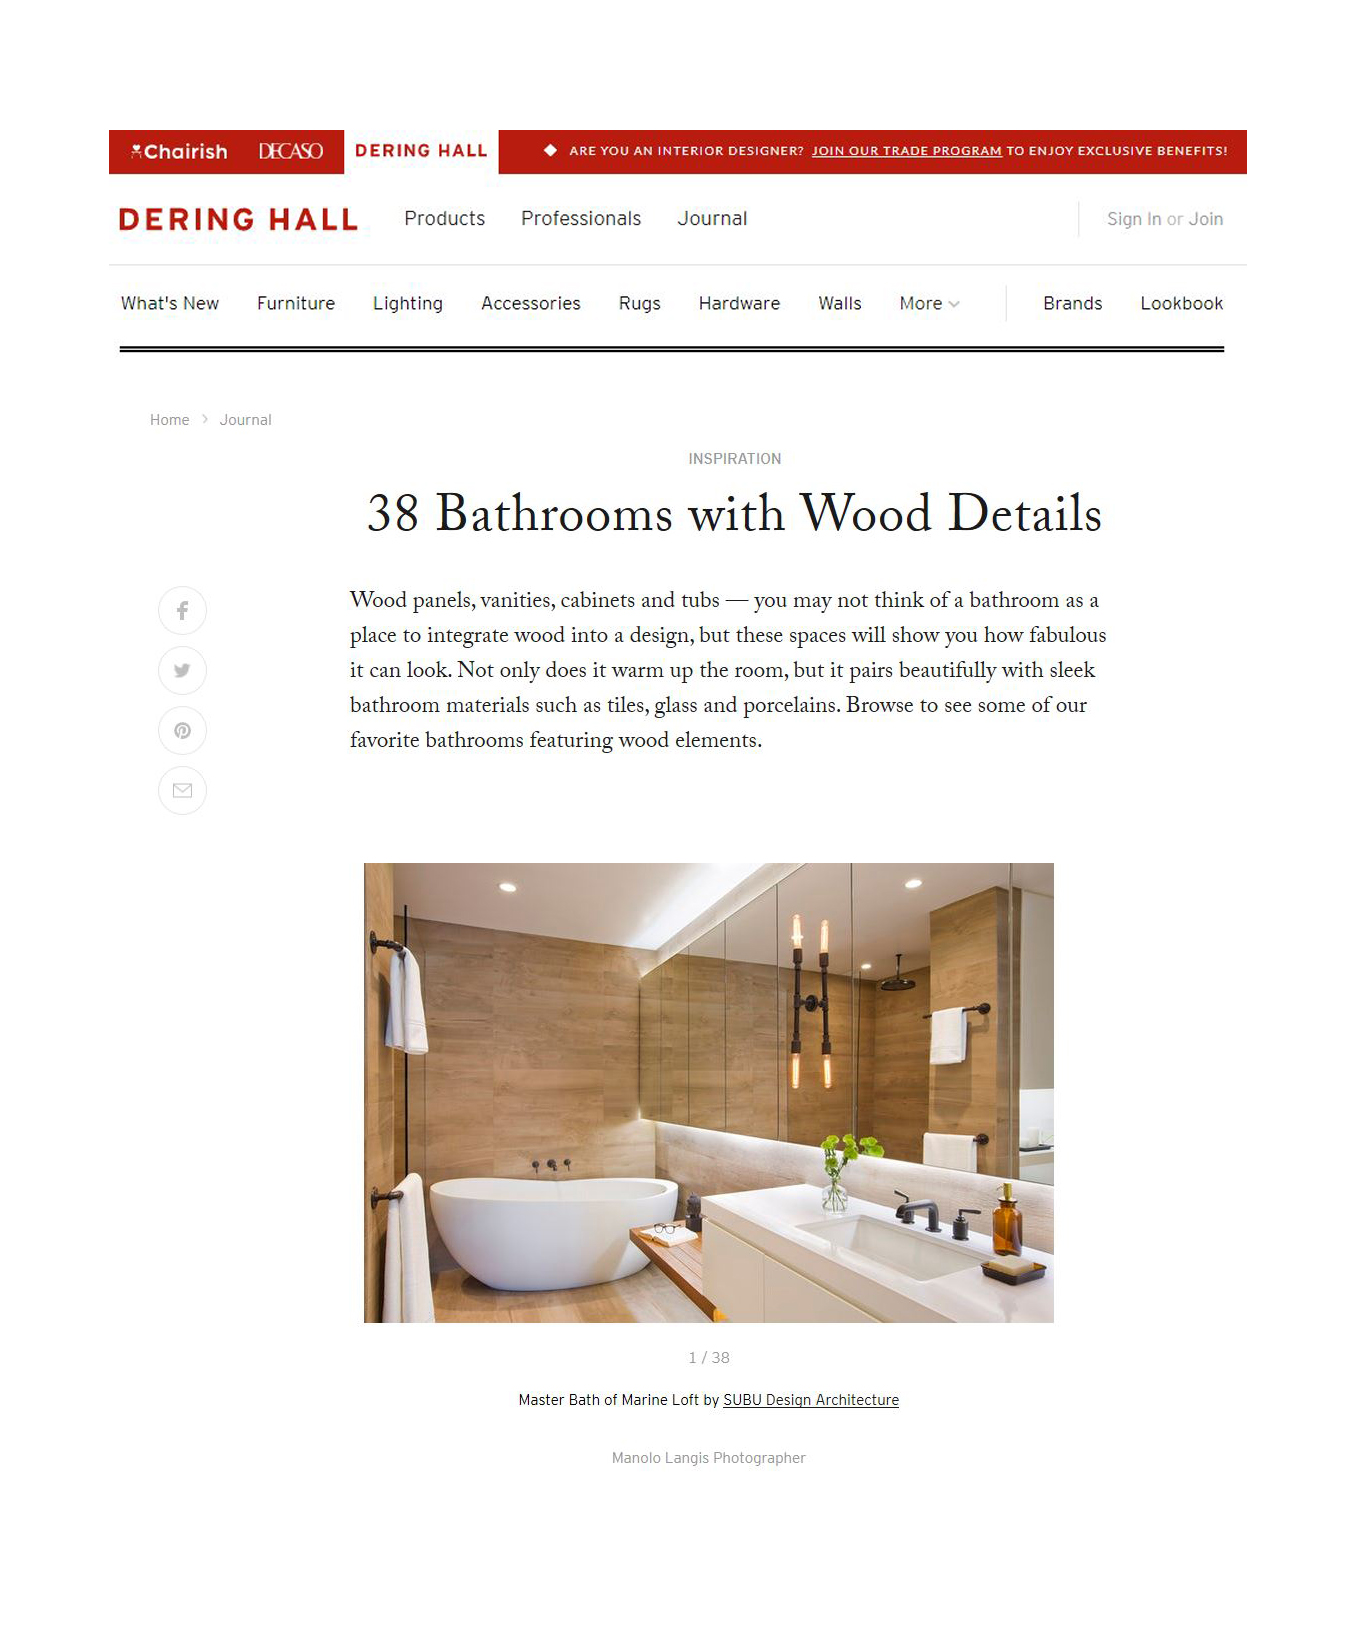 dering hall - SEPTEMBER 19, 2018 - 38 BATHROOMS WITH WOOD DETAILS